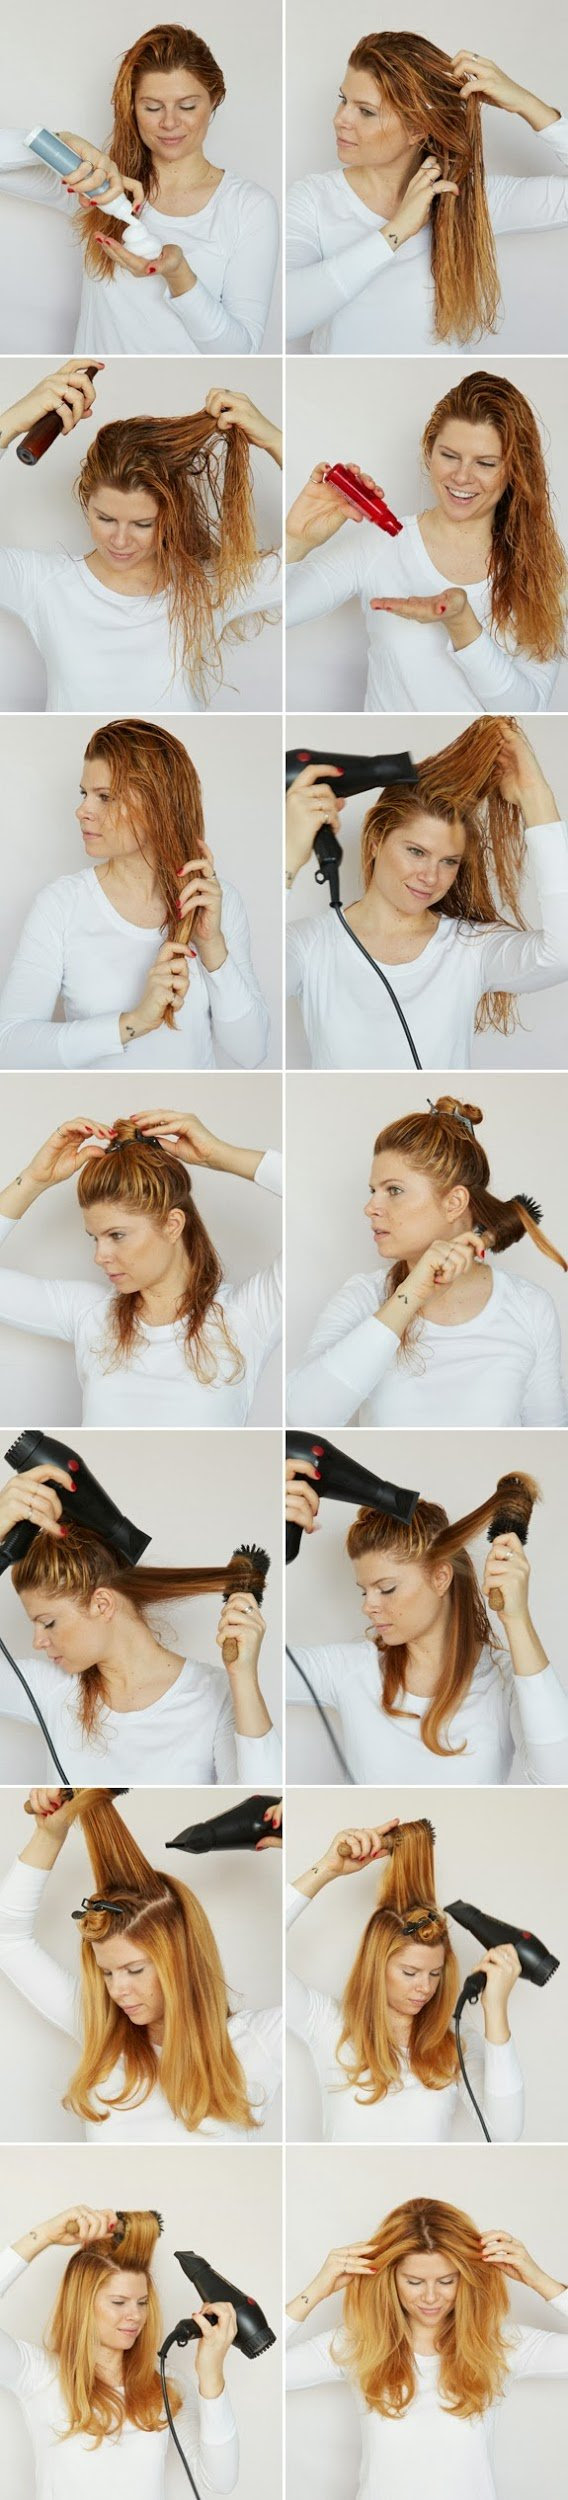 How To Blow Dry Your Hair Like A Hair Stylist A Cup Of Jo